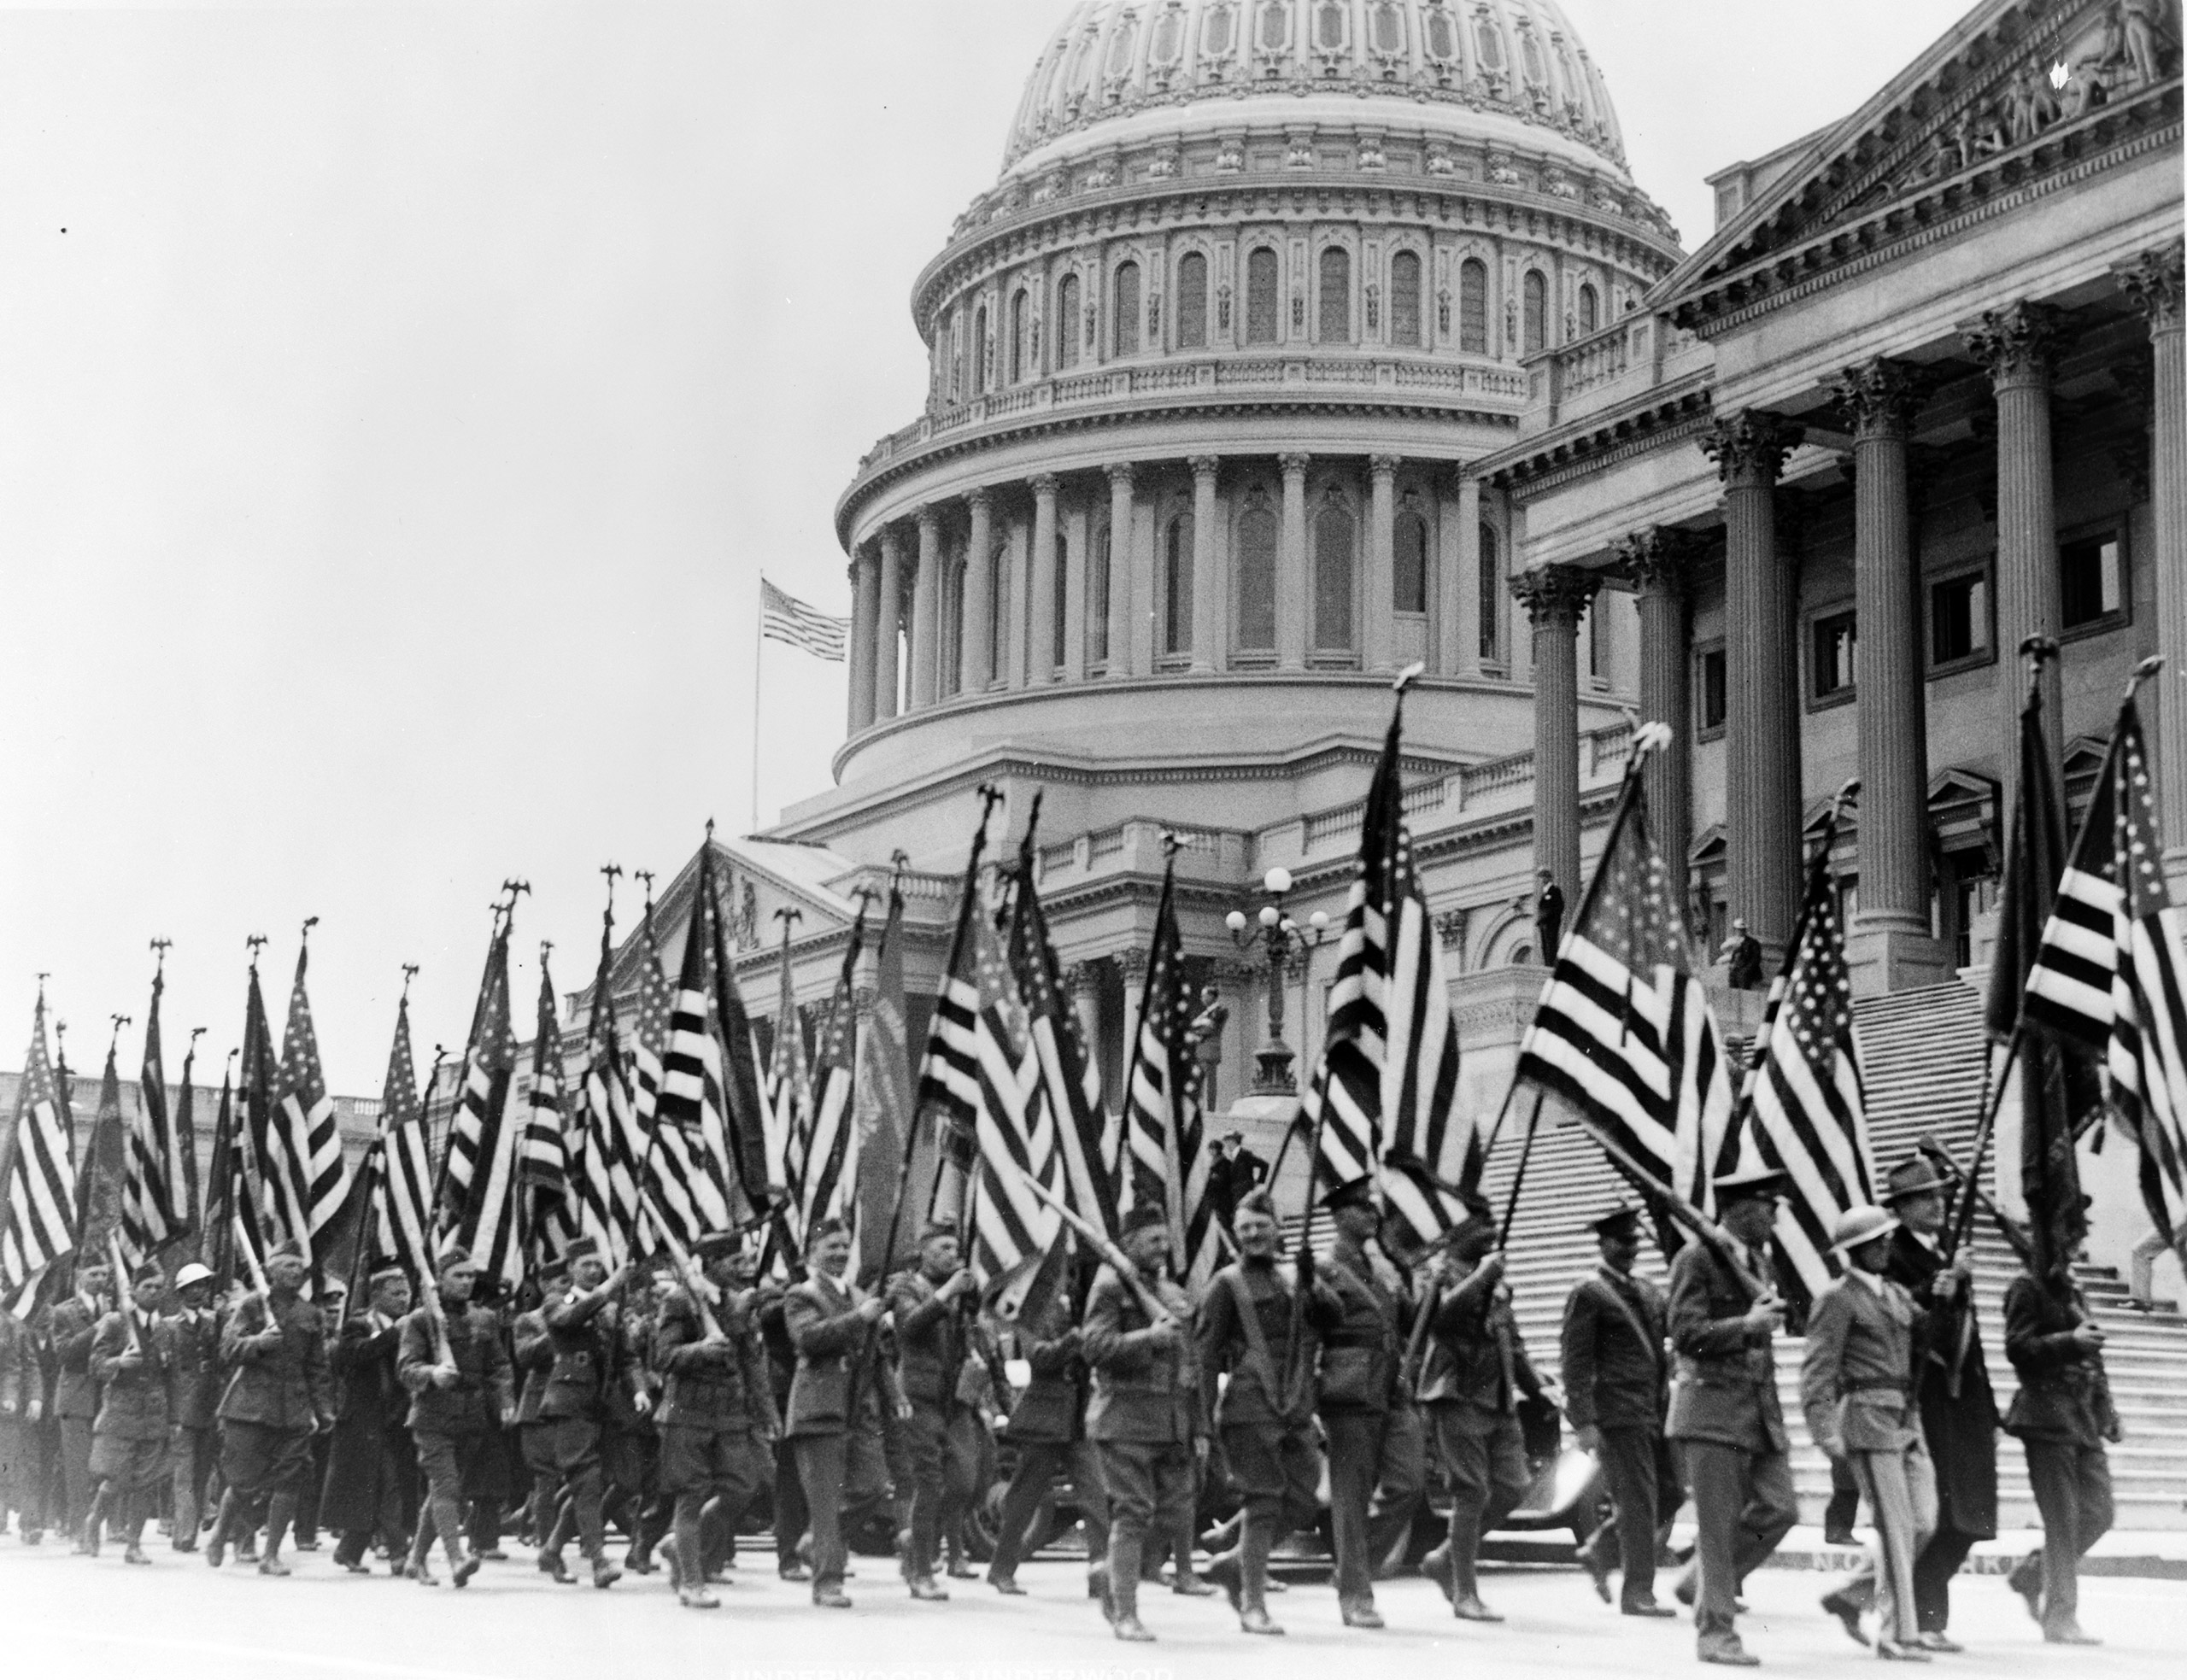 Members of the Bonus Expeditionary Forces, many carrying American flags, marching across the east plaza of the U.S. Capitol. April 8, 1932.